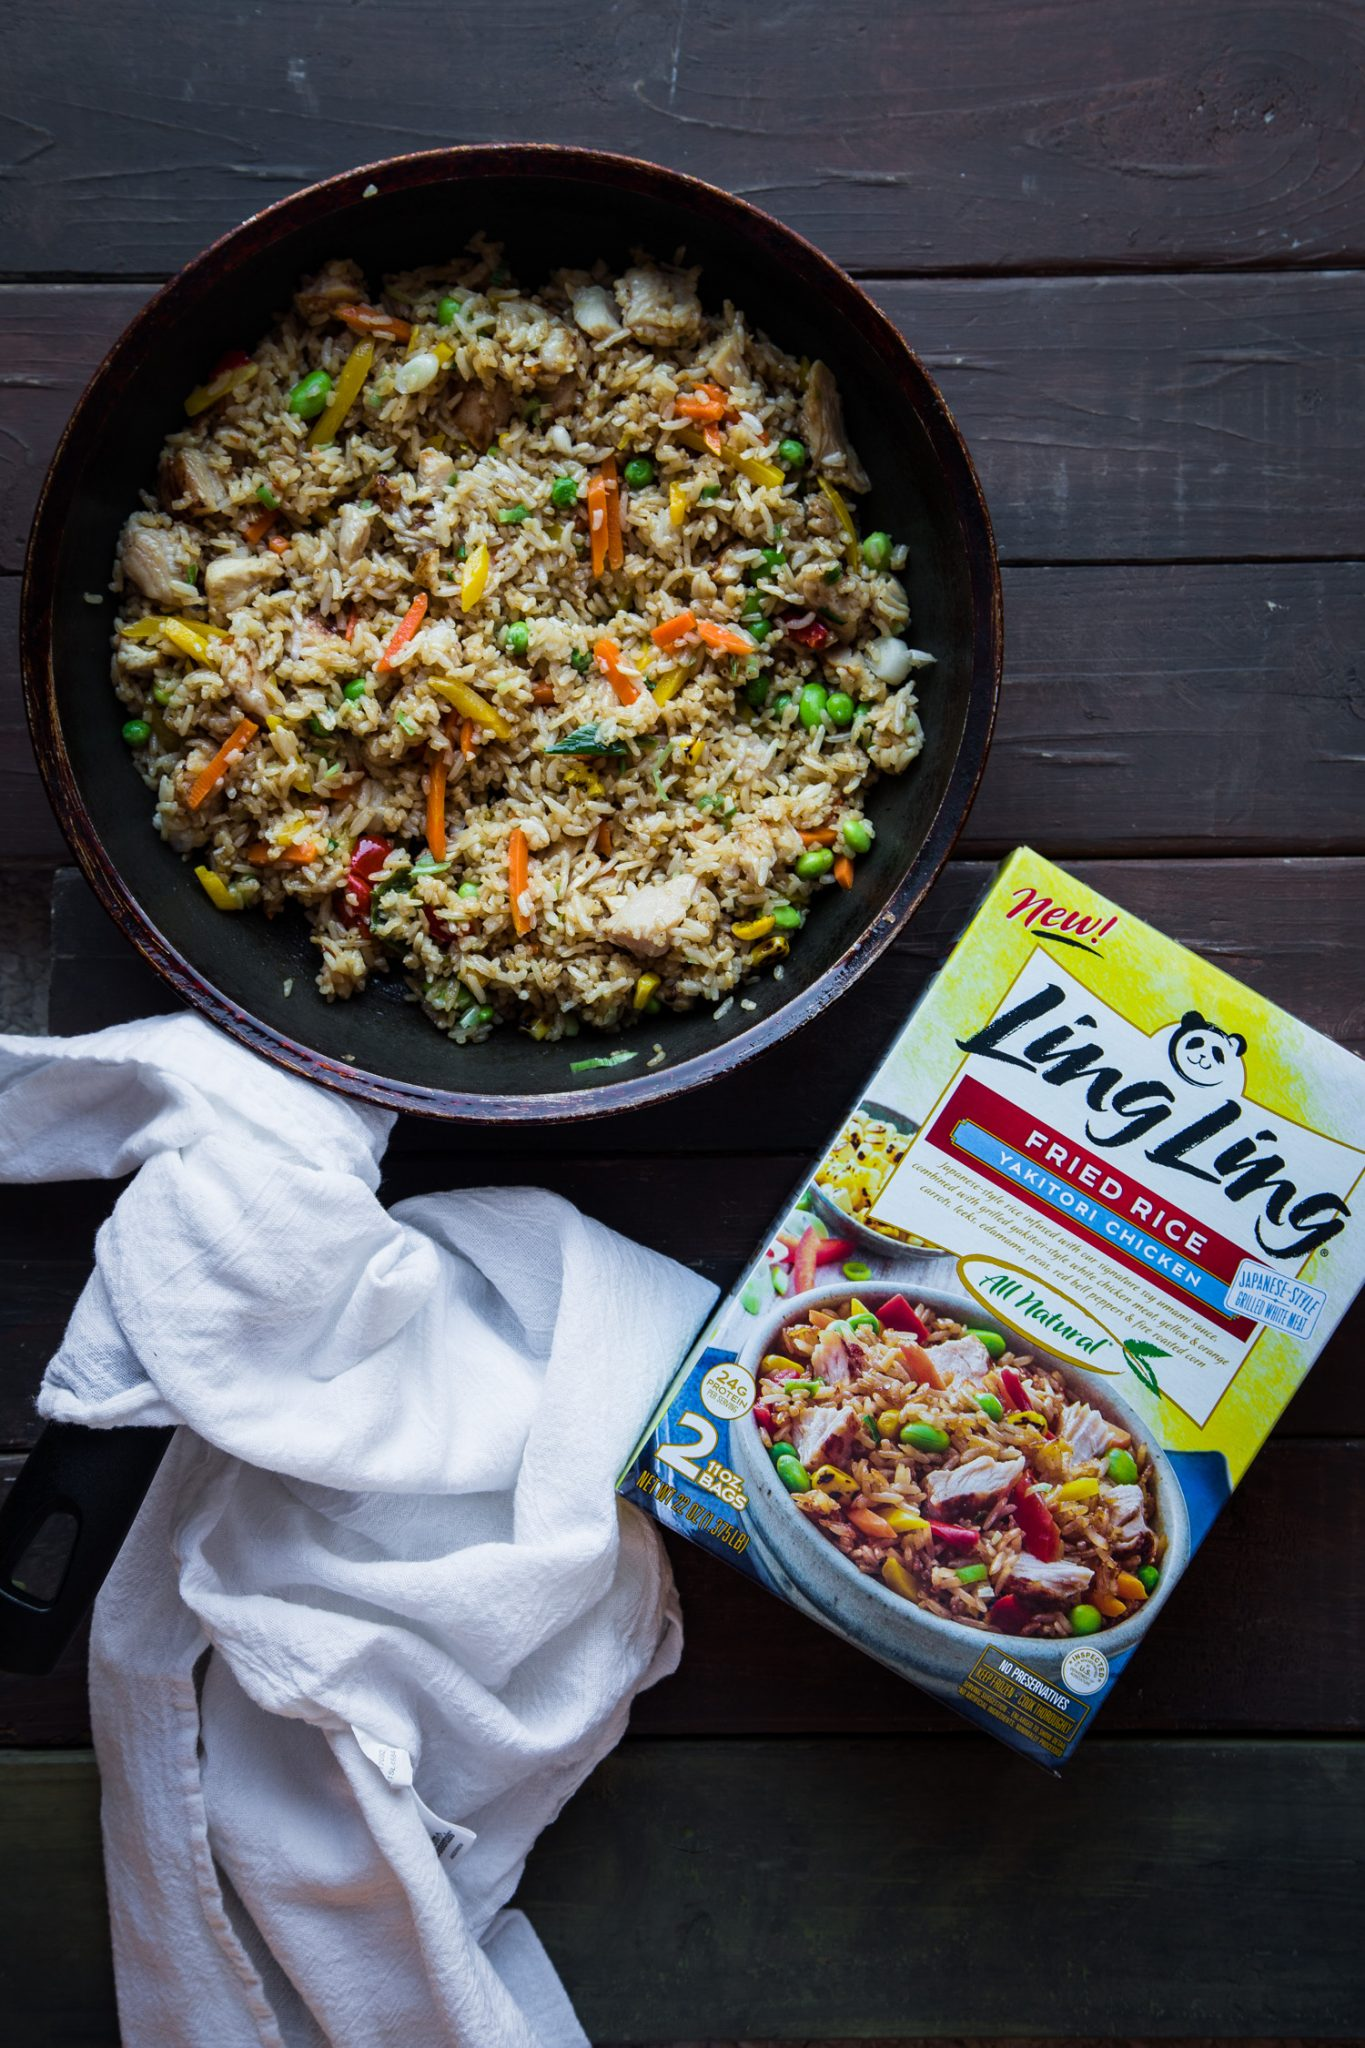 Yakitori Chicken Fried Rice #ad #LingLingAsianFood #LL #asianfood #easymeals #friedrice #chopsticks